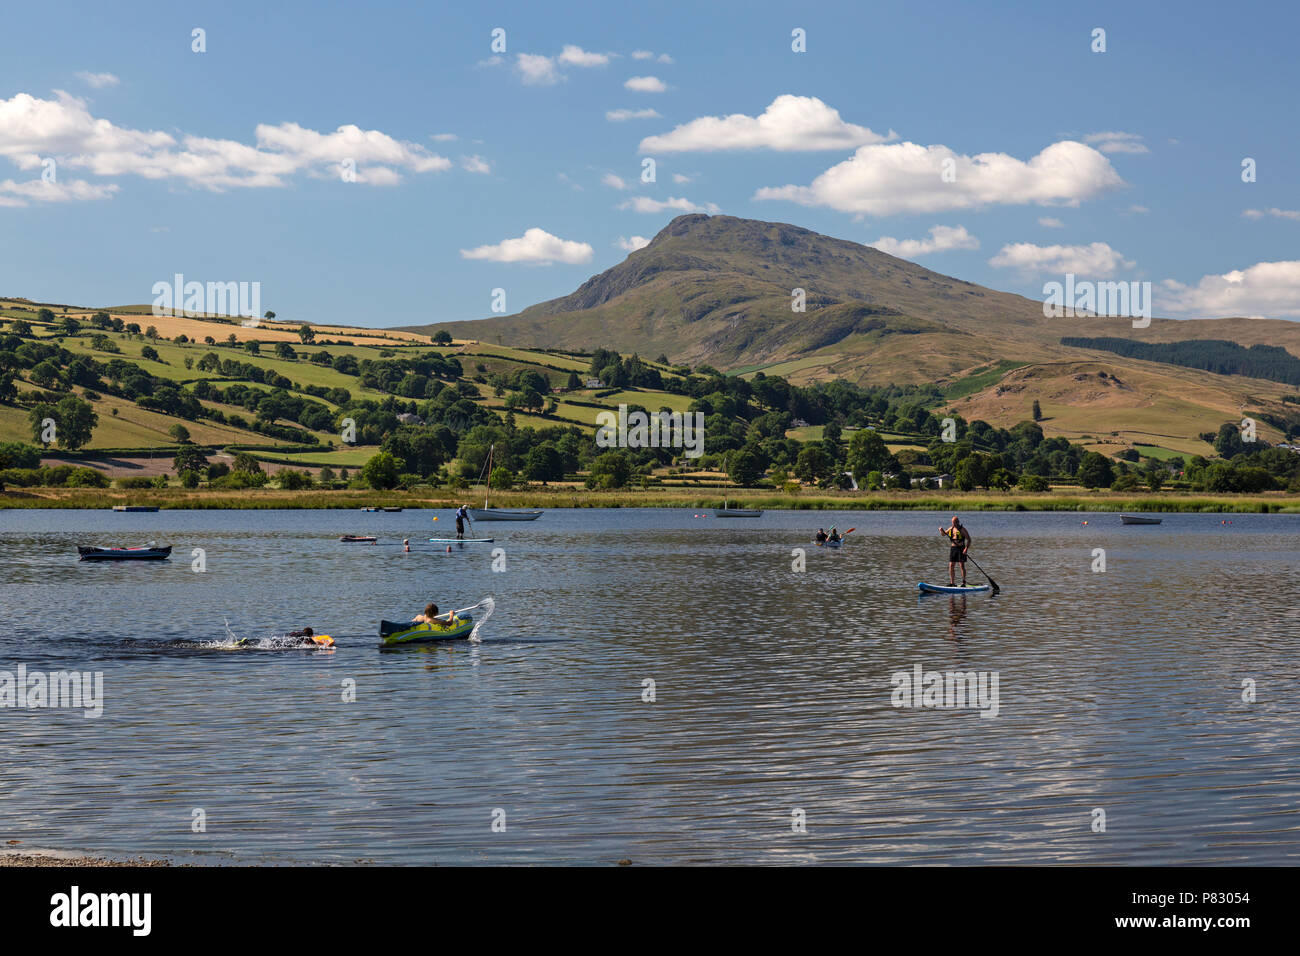 People taking part in various watersports on Lake Bala, or Llyn Tegid in Gwynedd, mid Wales, UK. - Stock Image